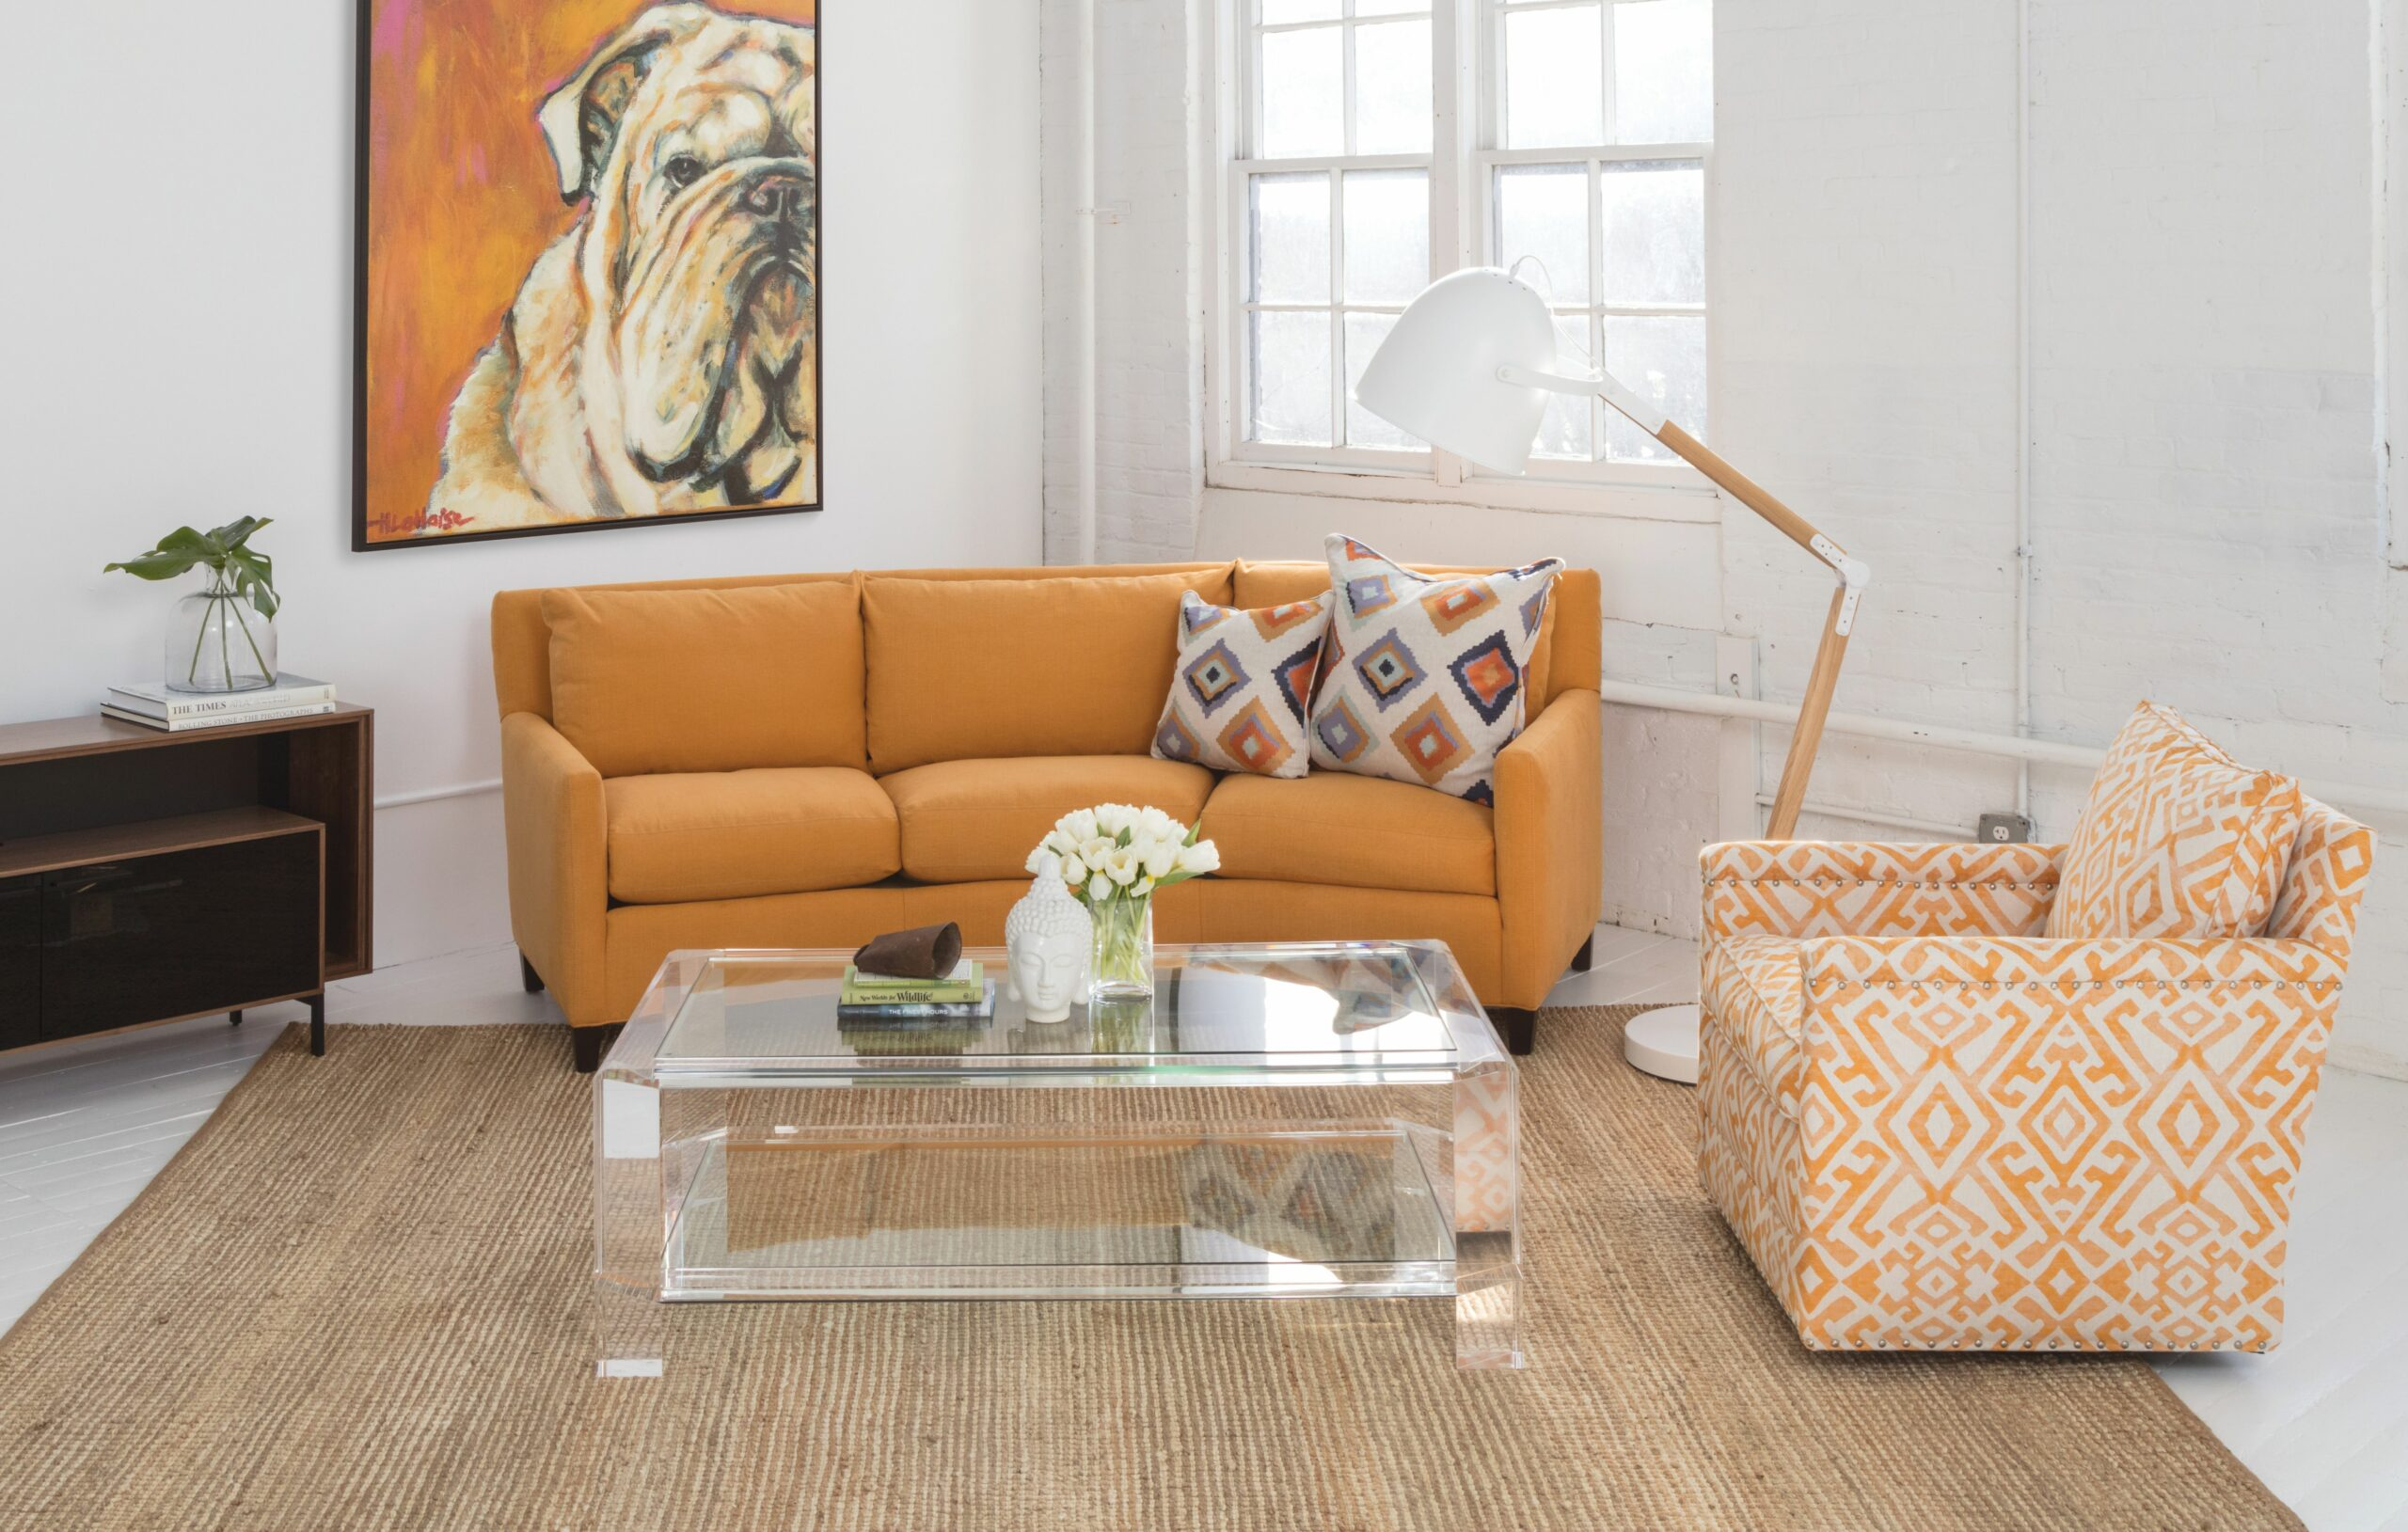 Circle Furniture - How to Choose a Sofa for a Small Living Room